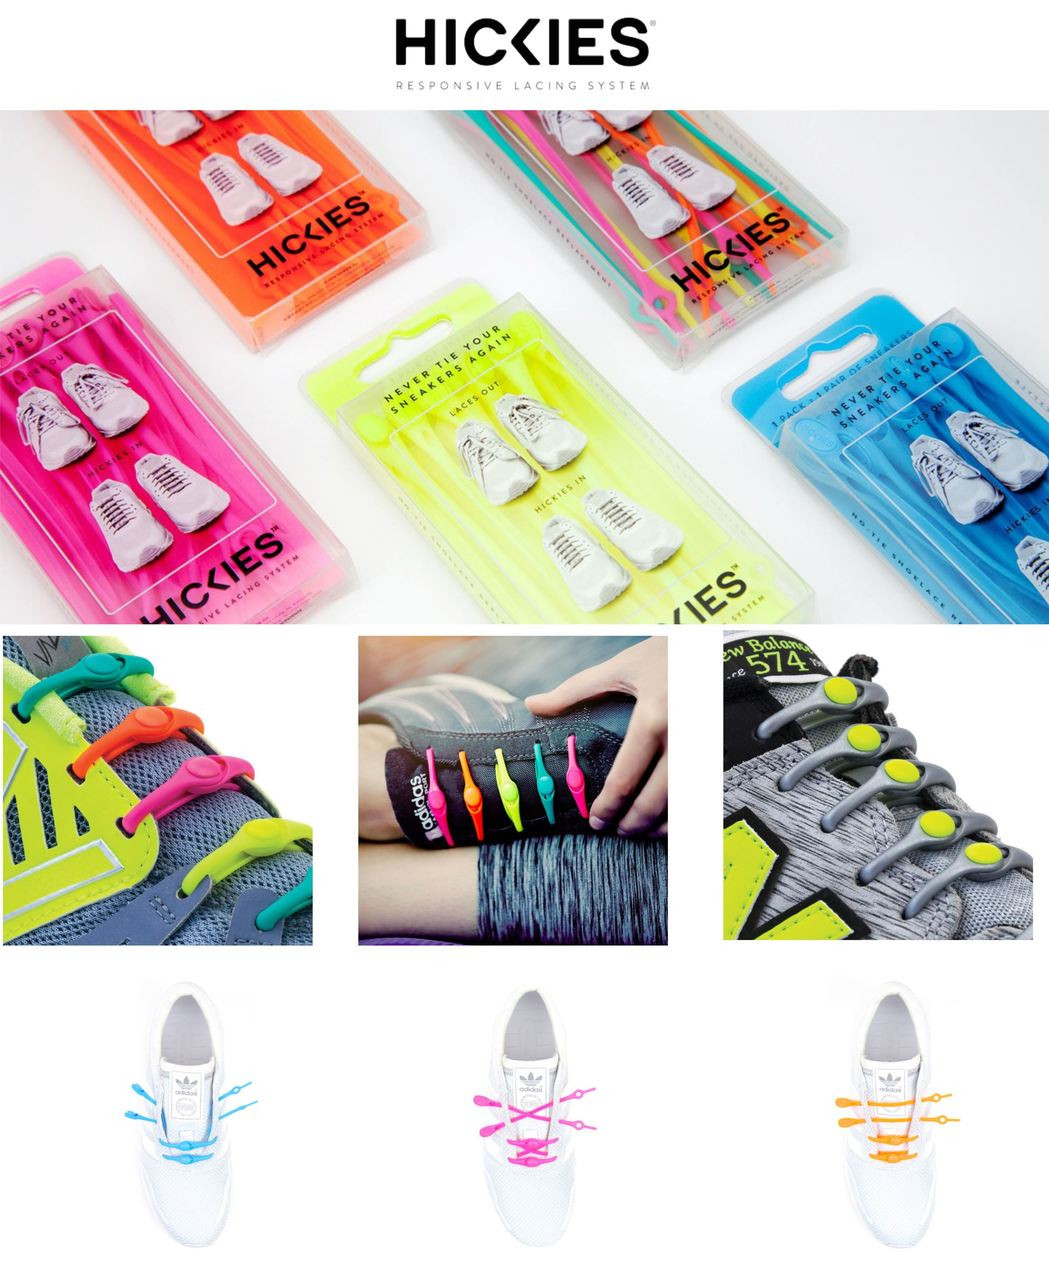 HICKIES 14 Elastic Trainer Lacing Replacement System No More Shoe Laces